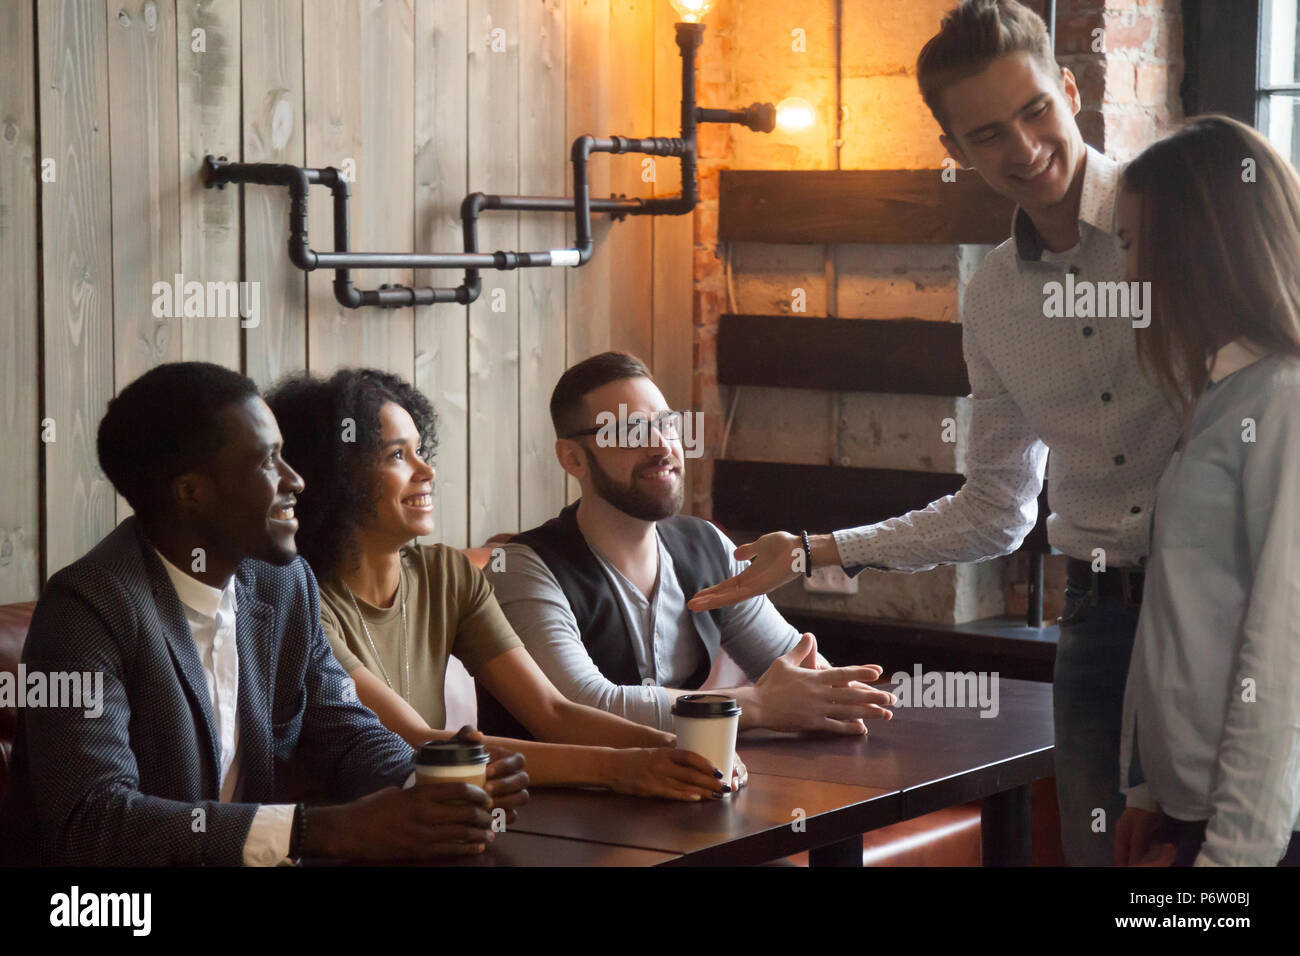 Smiling worker introducing new employee to colleagues during caf - Stock Image